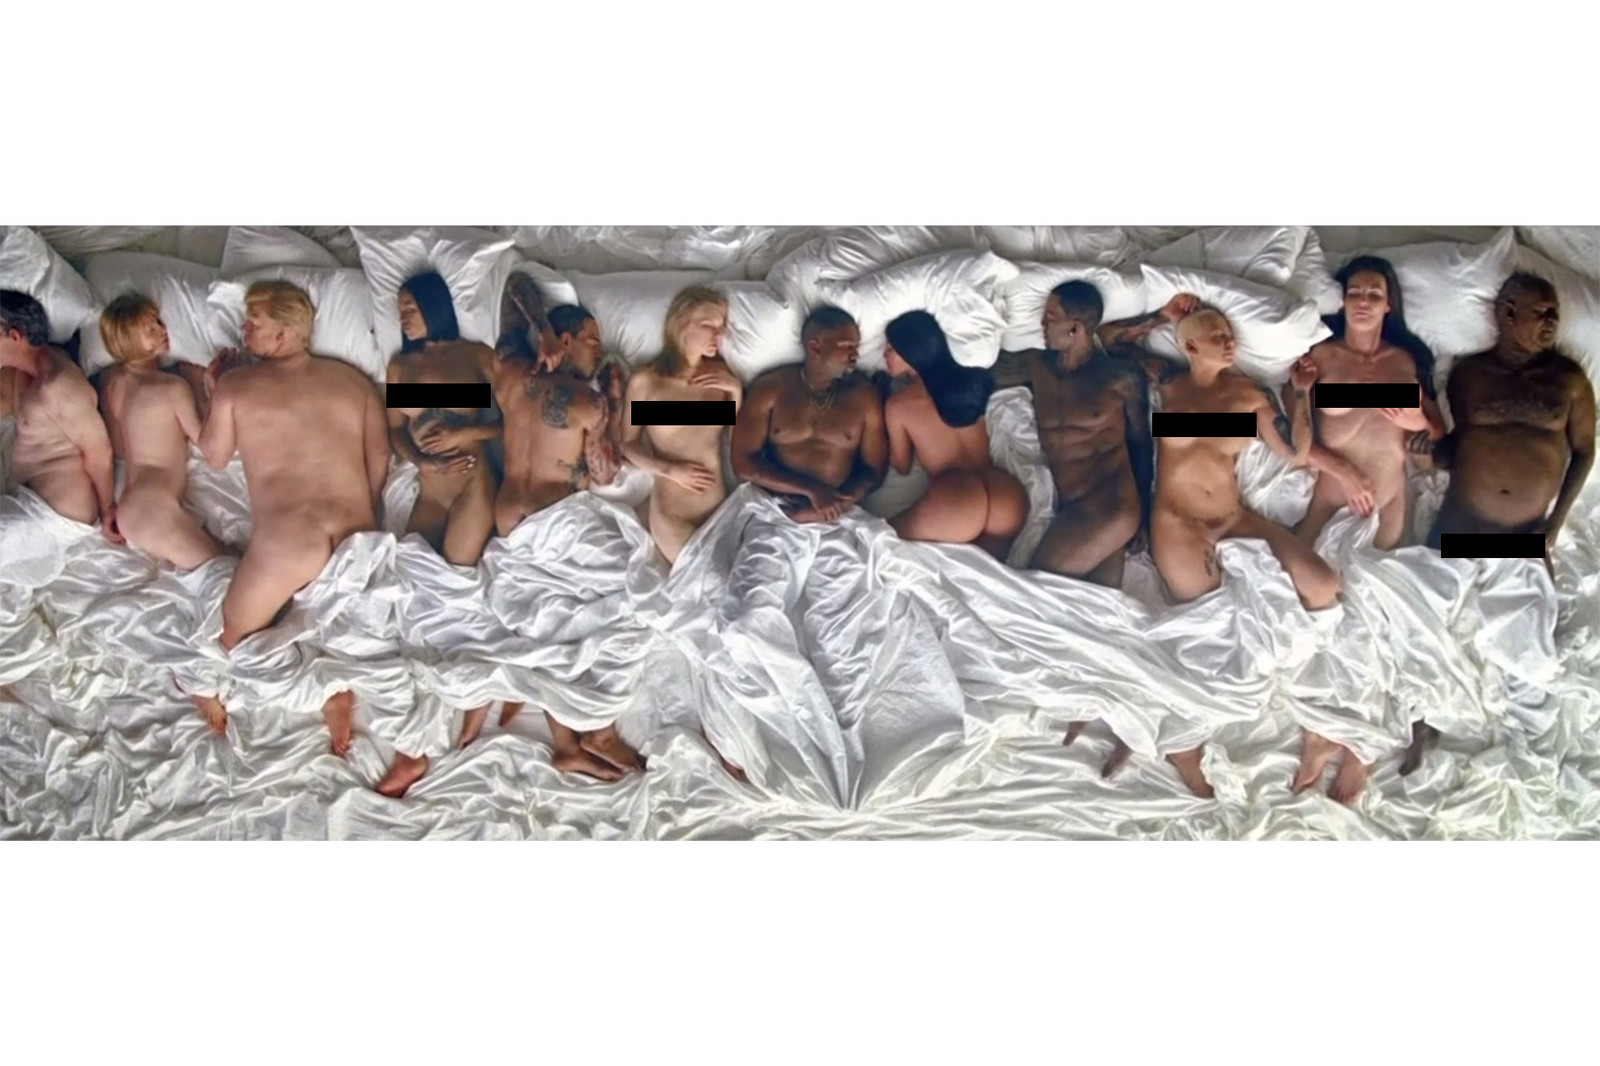 kanye-west-famous-vanity-fair-interview-0